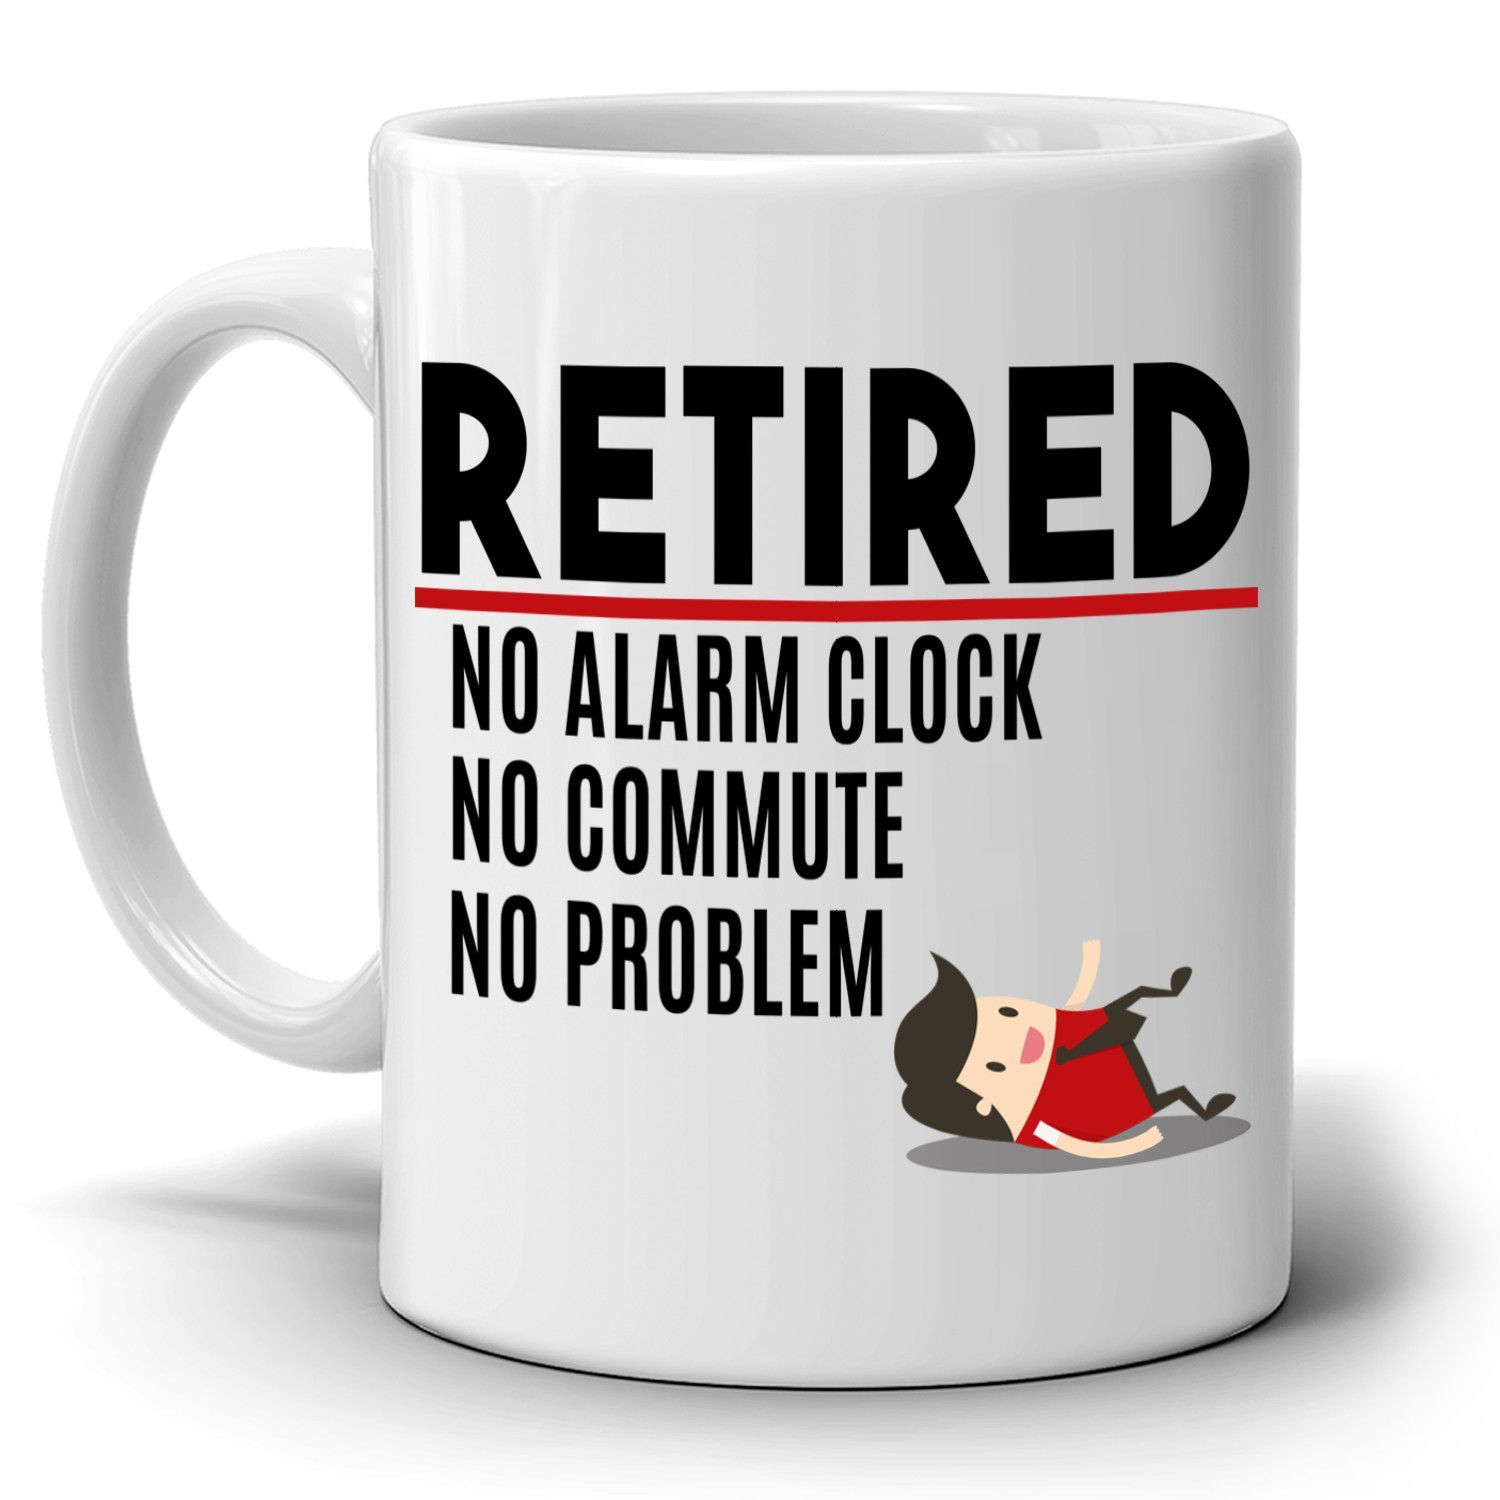 Funny Humorous Retirement Gifts For Women And Men Mug Retired No Alarm No Commute No Problem Coffee Cup Printed On Both Sides Mugs For Men Retirement Gifts For Women Retirement Gifts